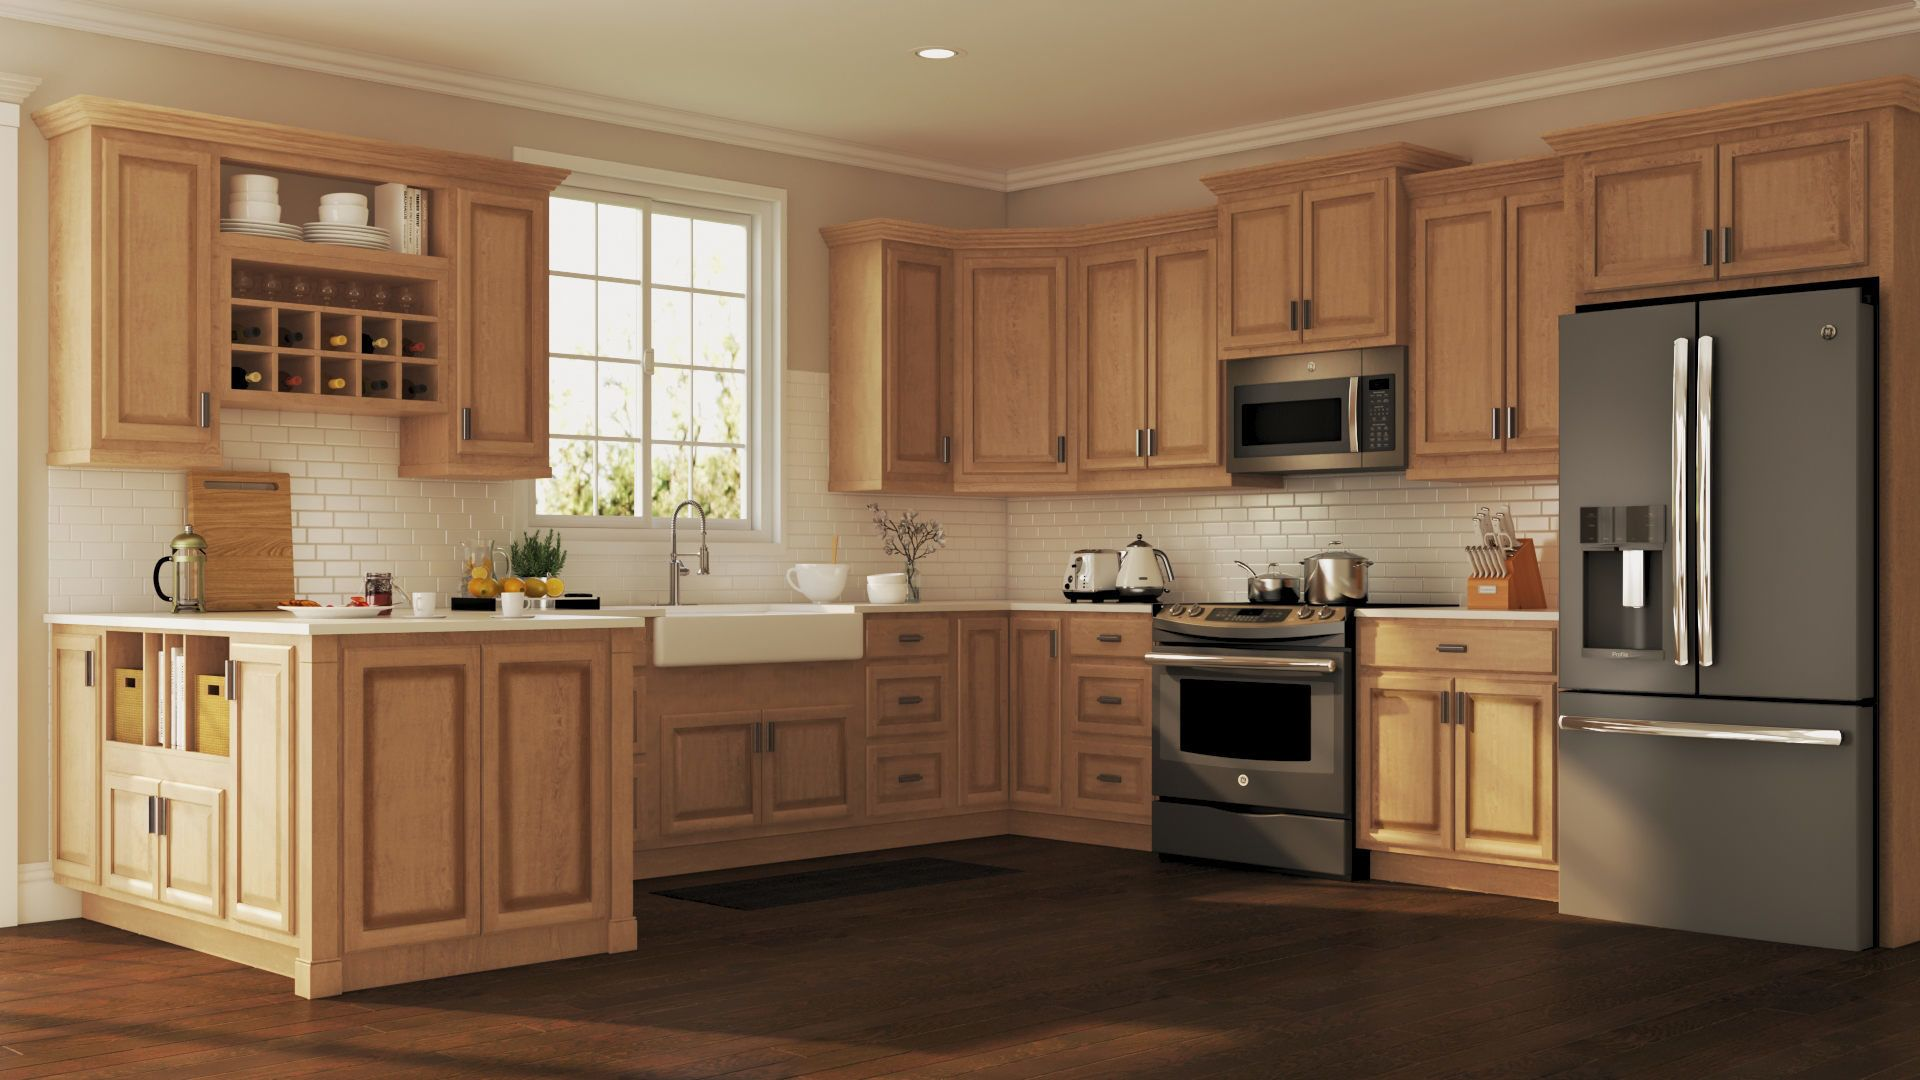 A Guide To Buying Used Kitchen Cabinets And Saving Money Used Kitchen Cabinets Home Depot Kitchen Kitchen Cabinet Styles